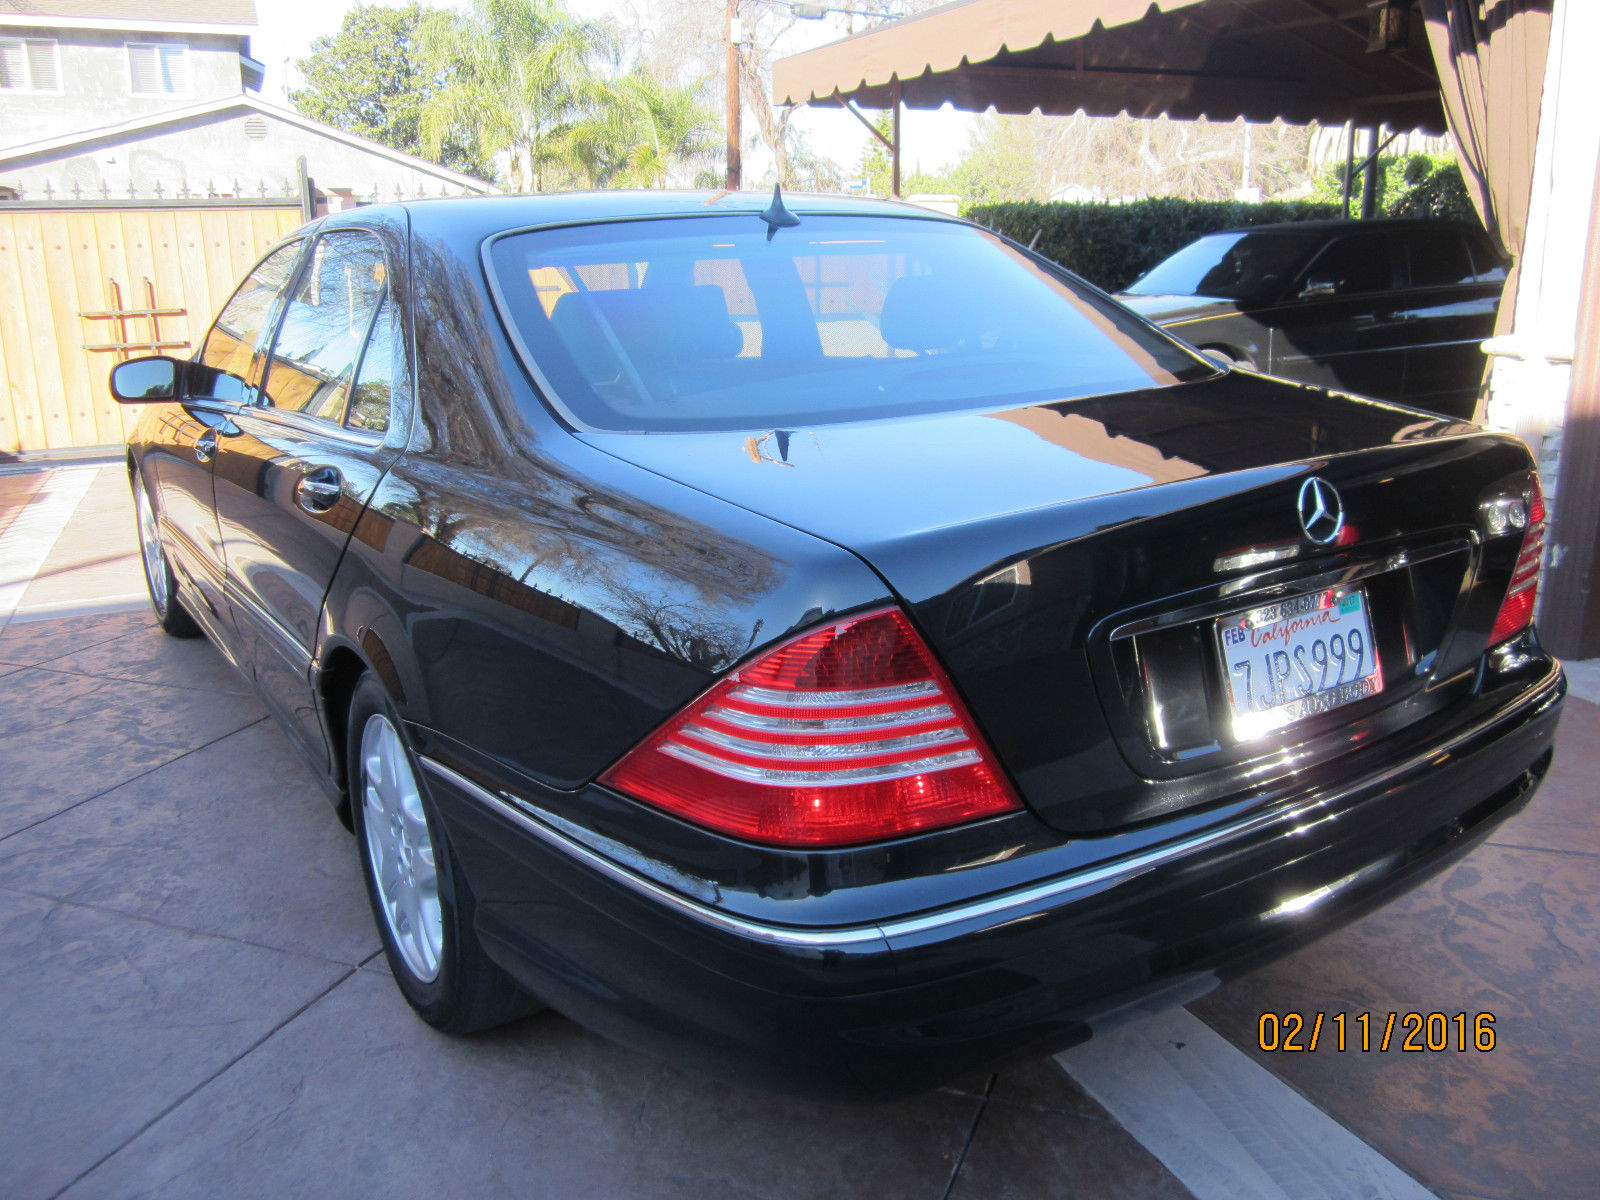 2016 Bmw 328i >> 2001 Mercedes-Benz S500 Guard – German Cars For Sale Blog